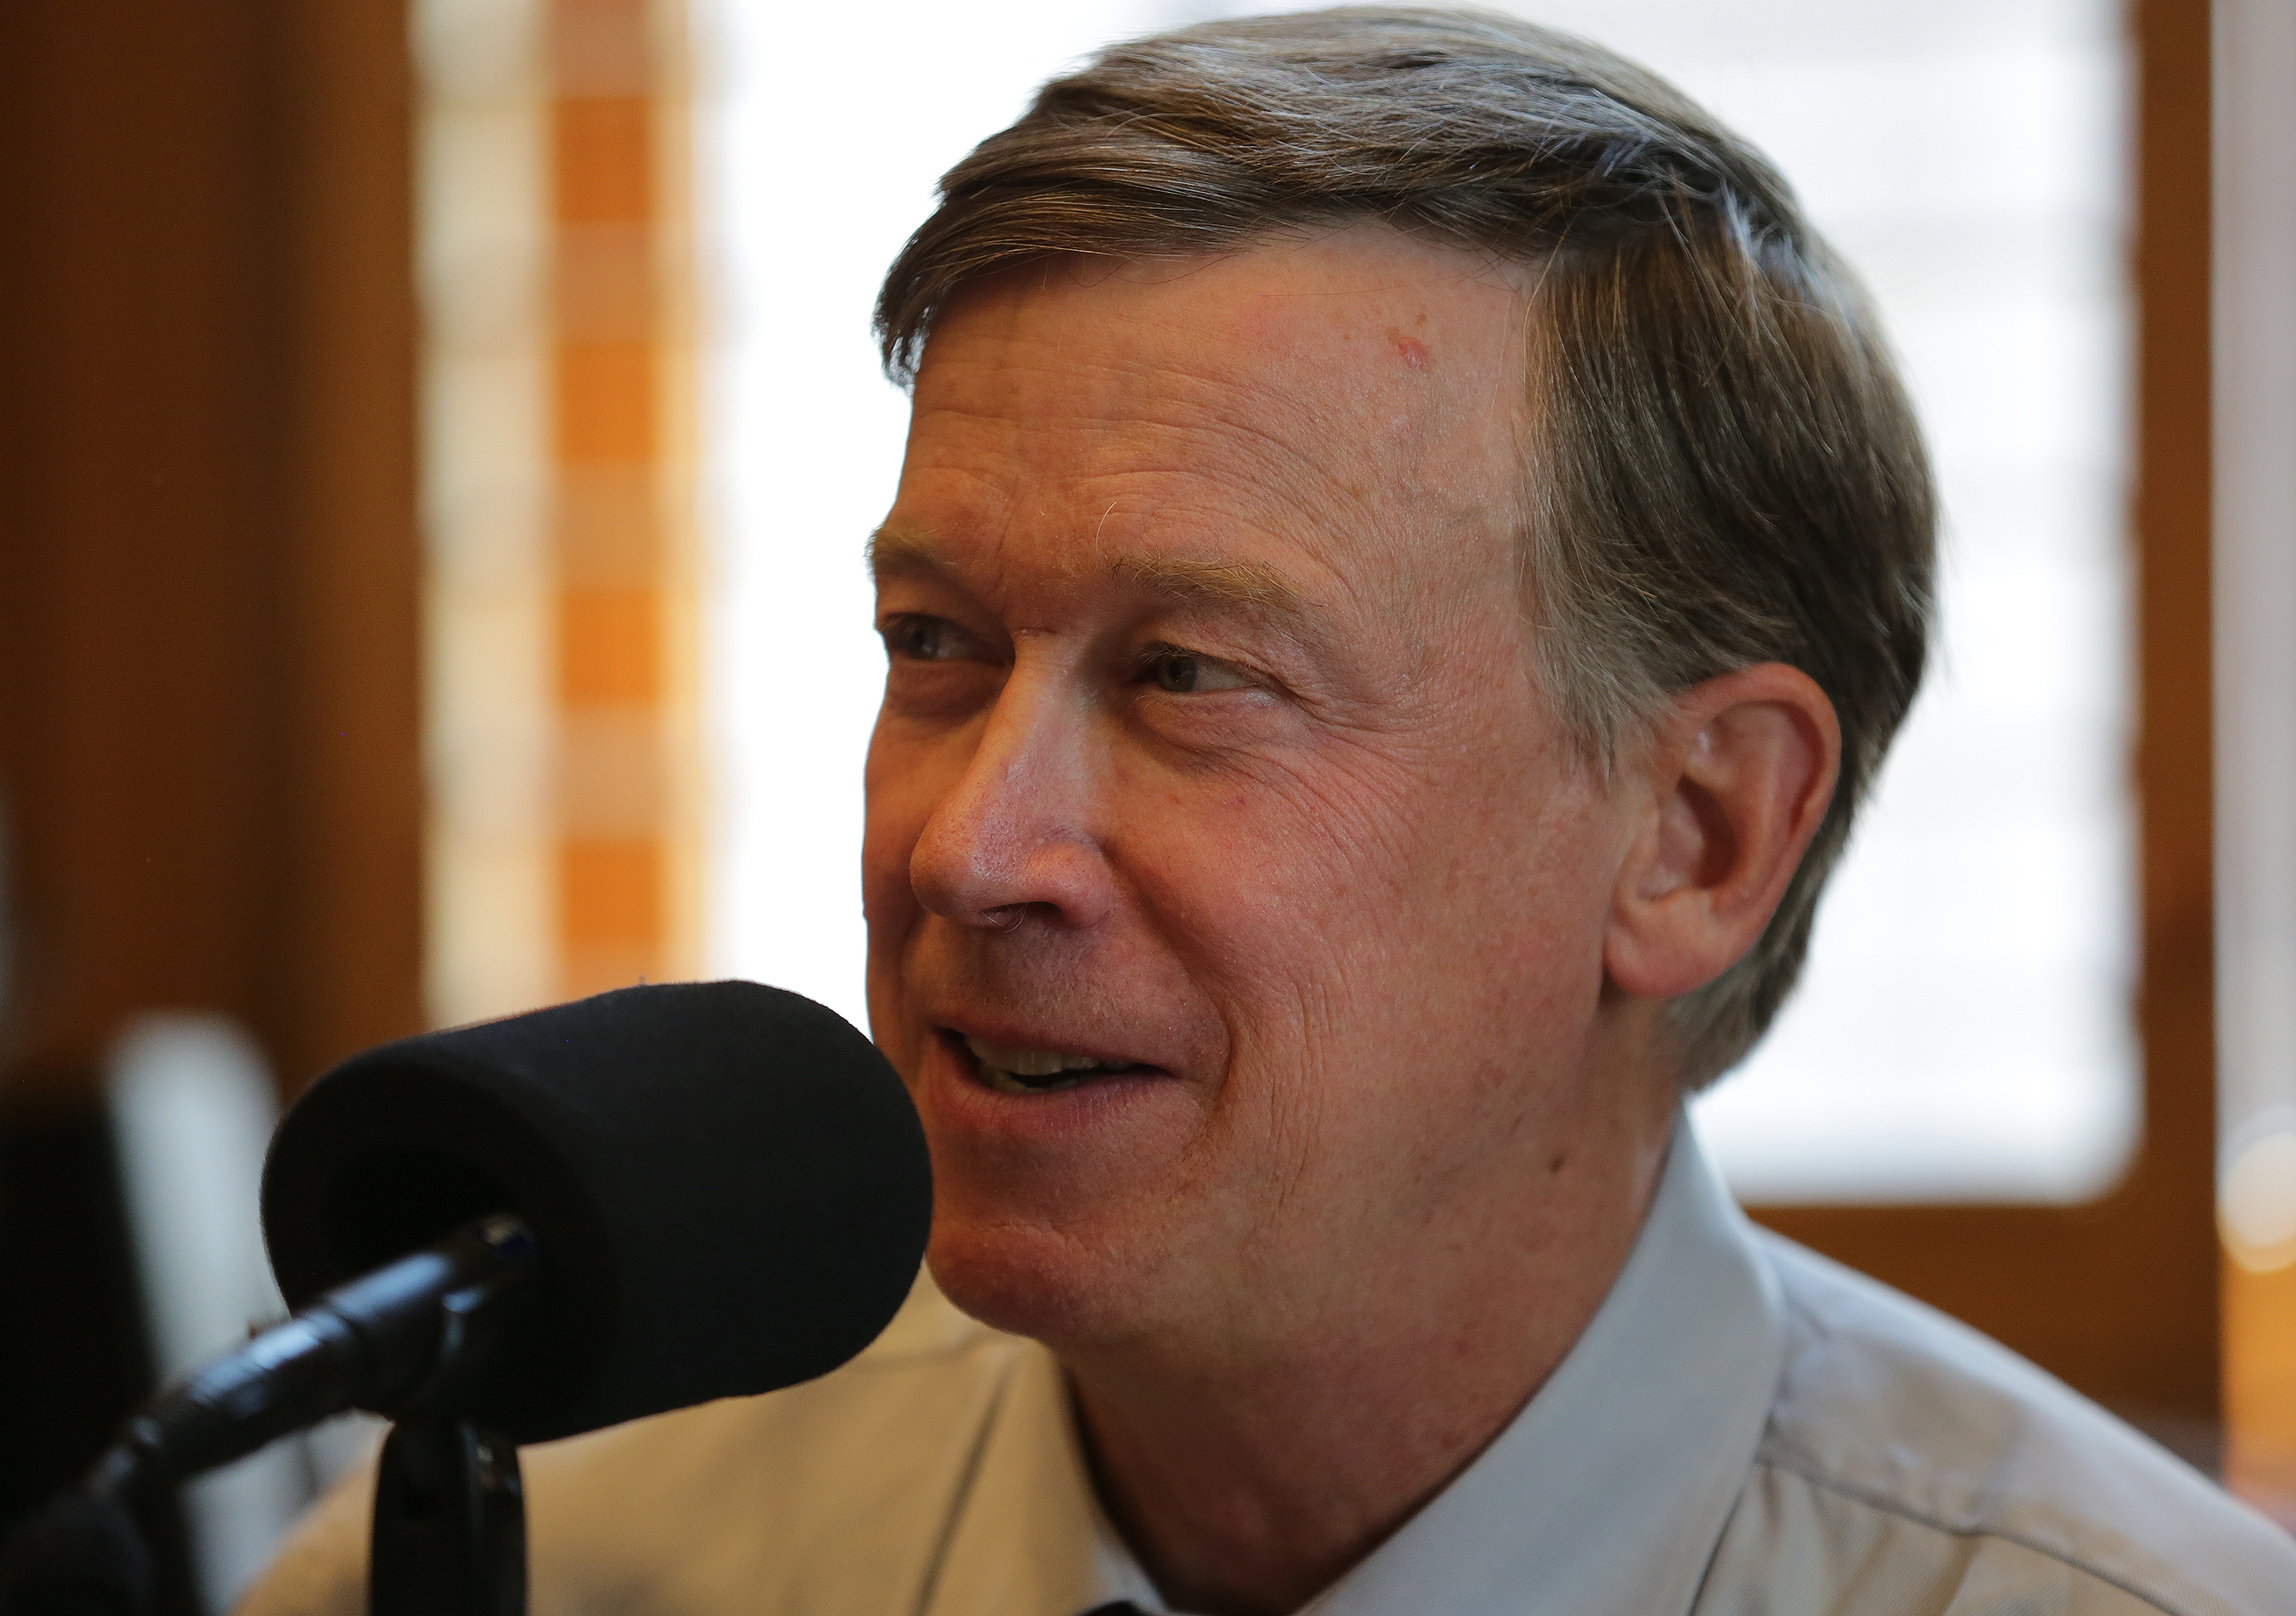 Photo: Hickenlooper On CM Jul 20 2015